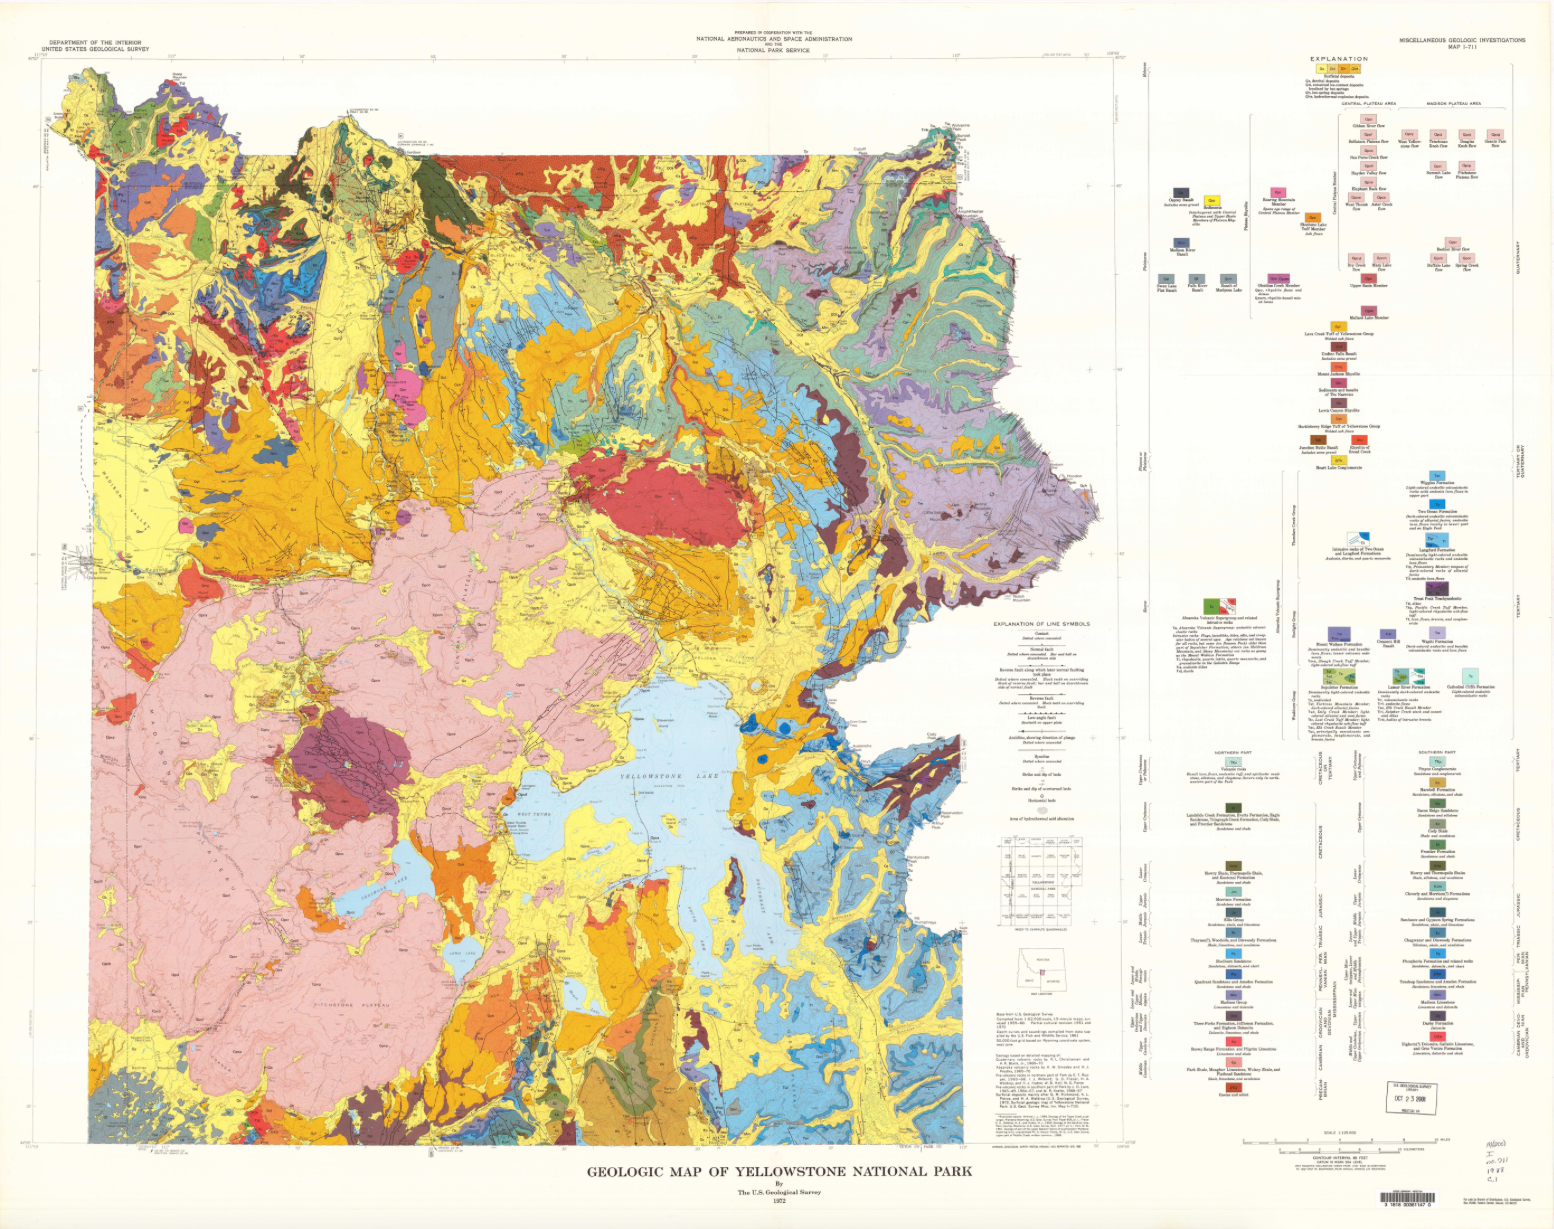 Classroom Earth: DEAPS Yellowstone 2016 | MIT Department of Earth ...